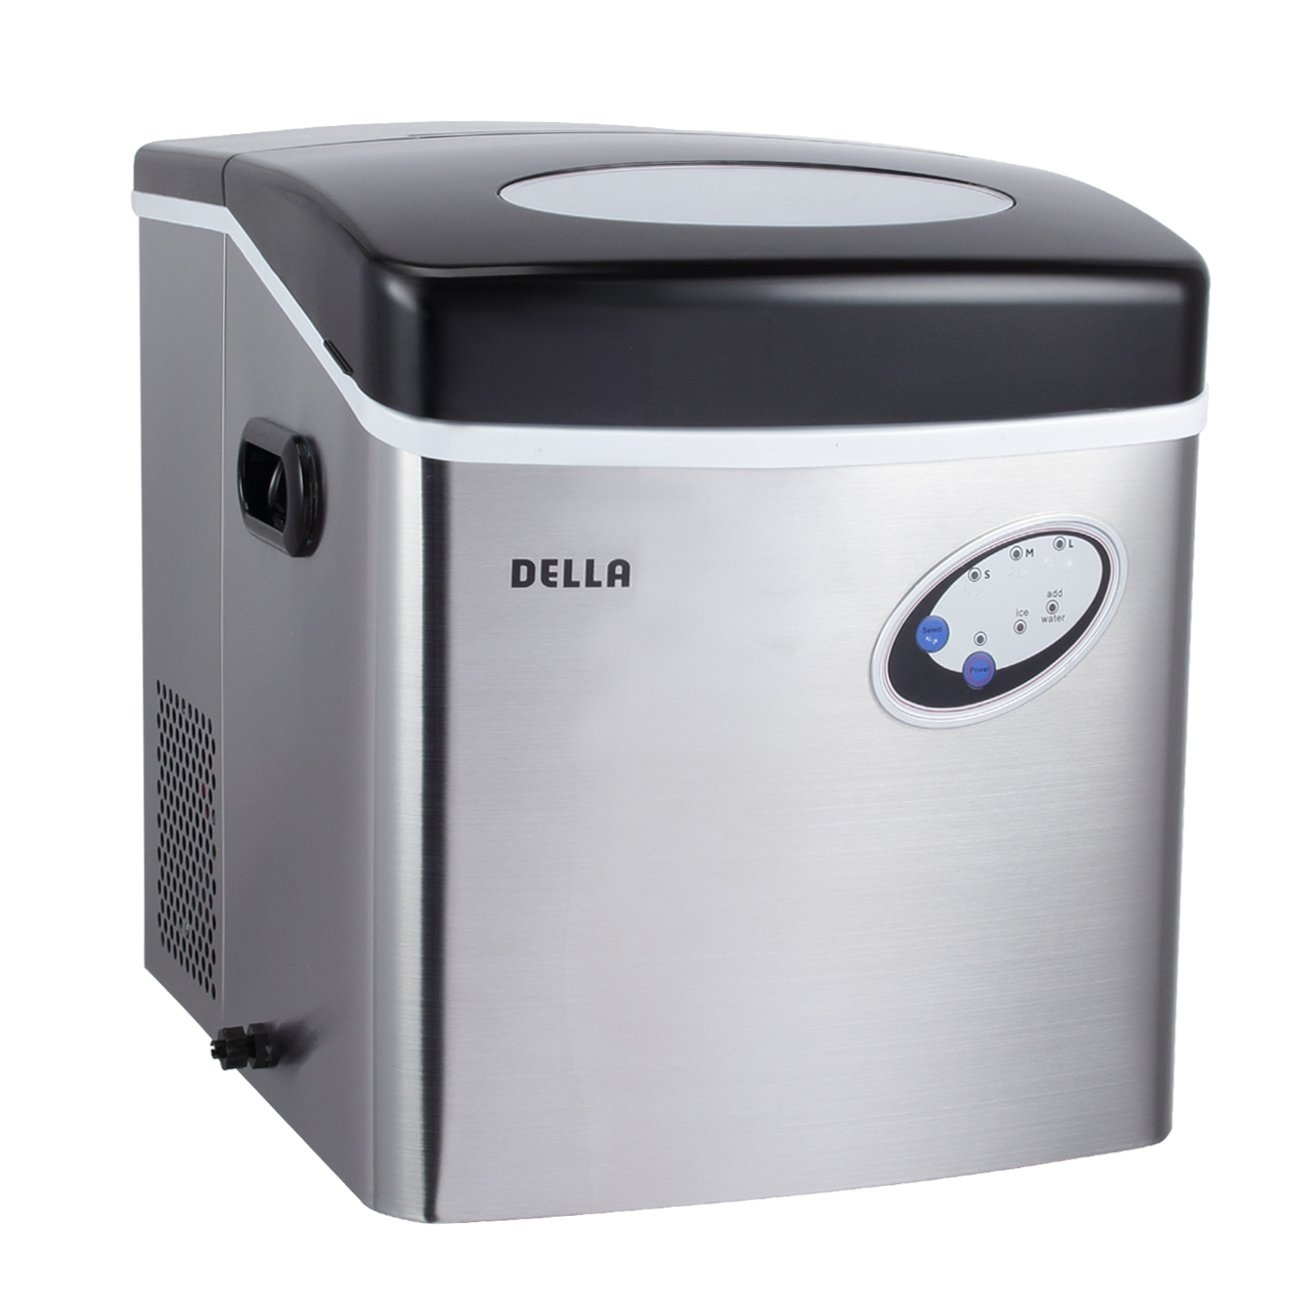 DELLA© 48-Pound Daily Capacity Counter Top Ice Maker - Stainless Steel - 4.5-Liter Water Reservoir - 3 Cube Sizes - Yield 48 Pounds of Ice Daily